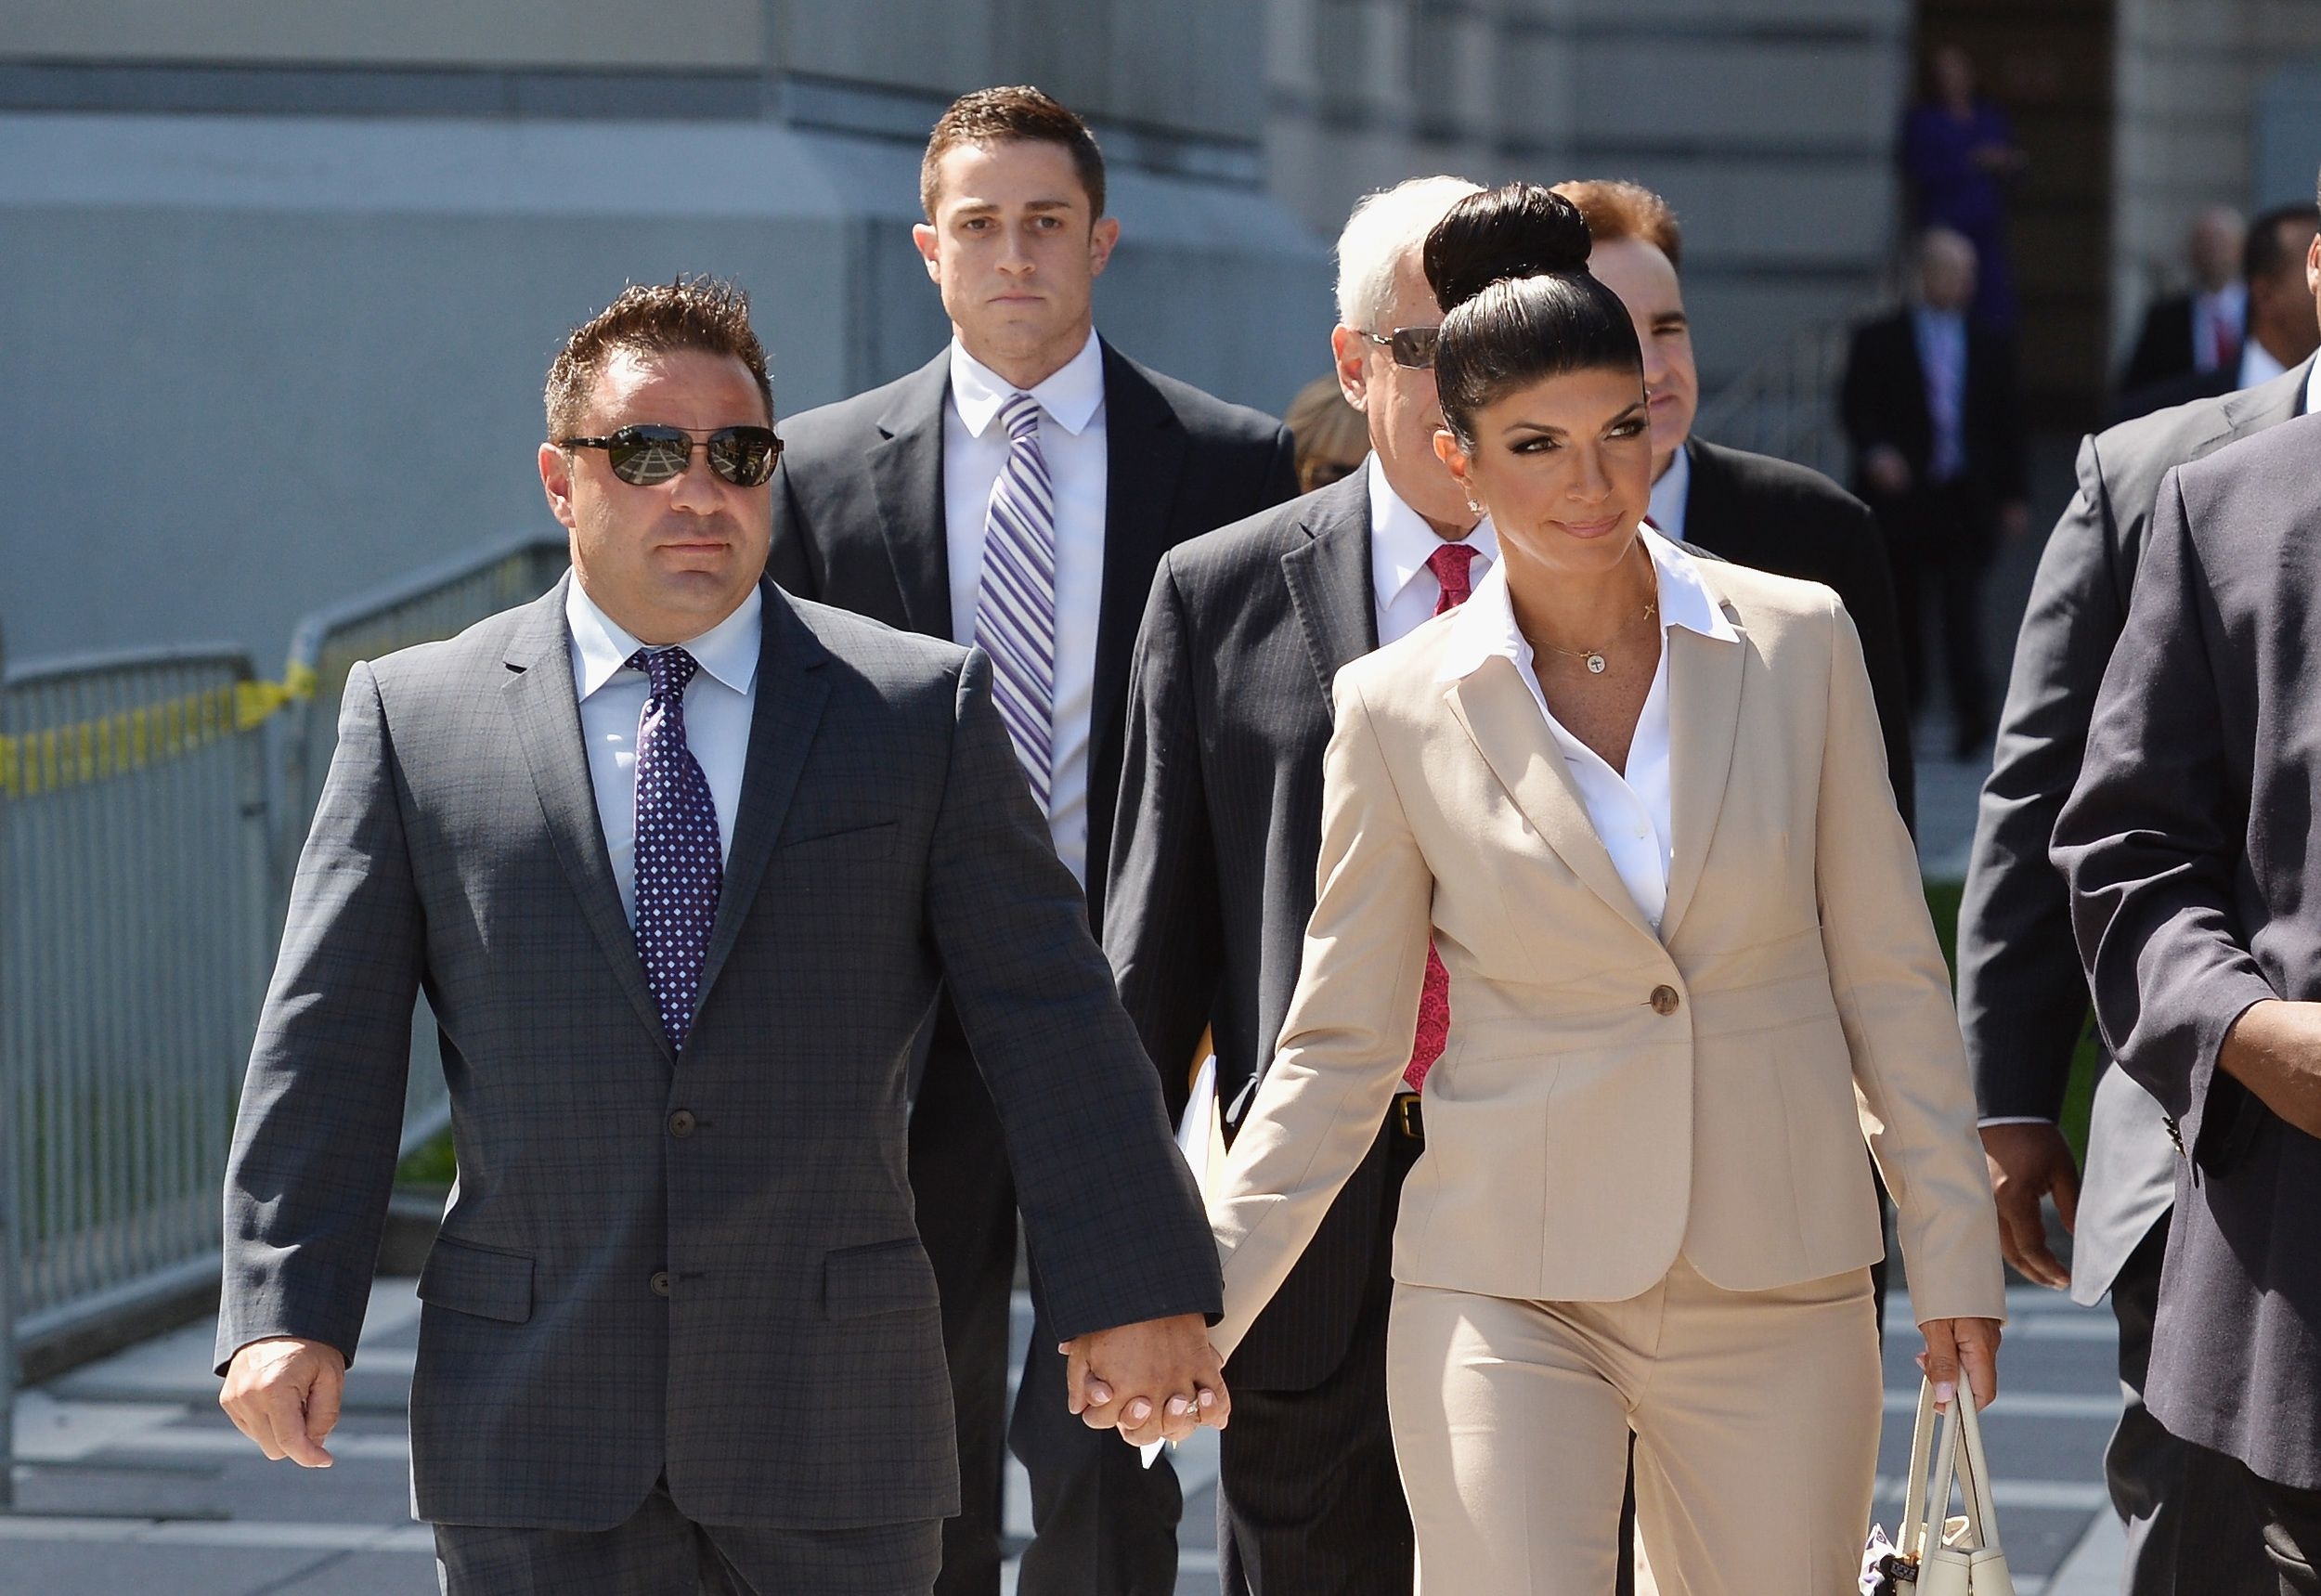 NEWARK, NJ - AUGUST 14:  Giuseppe 'Joe' Giudice (L) and wife Teresa Giudice leave court after facing charges of defrauding lenders, illegally obtaining mortgages and other loans as well as allegedly hiding assets and income during a bankruptcy case on August 14, 2013 in Newark, United States.  (Photo by Mike Coppola/Getty Images) via @AOL_Lifestyle Read more: http://m.aol.com/article/2016/07/14/teresa-giudice-storms-off-access-hollywood-live/21432298/?a_dgi=aolshare_pinterest#fullscreen